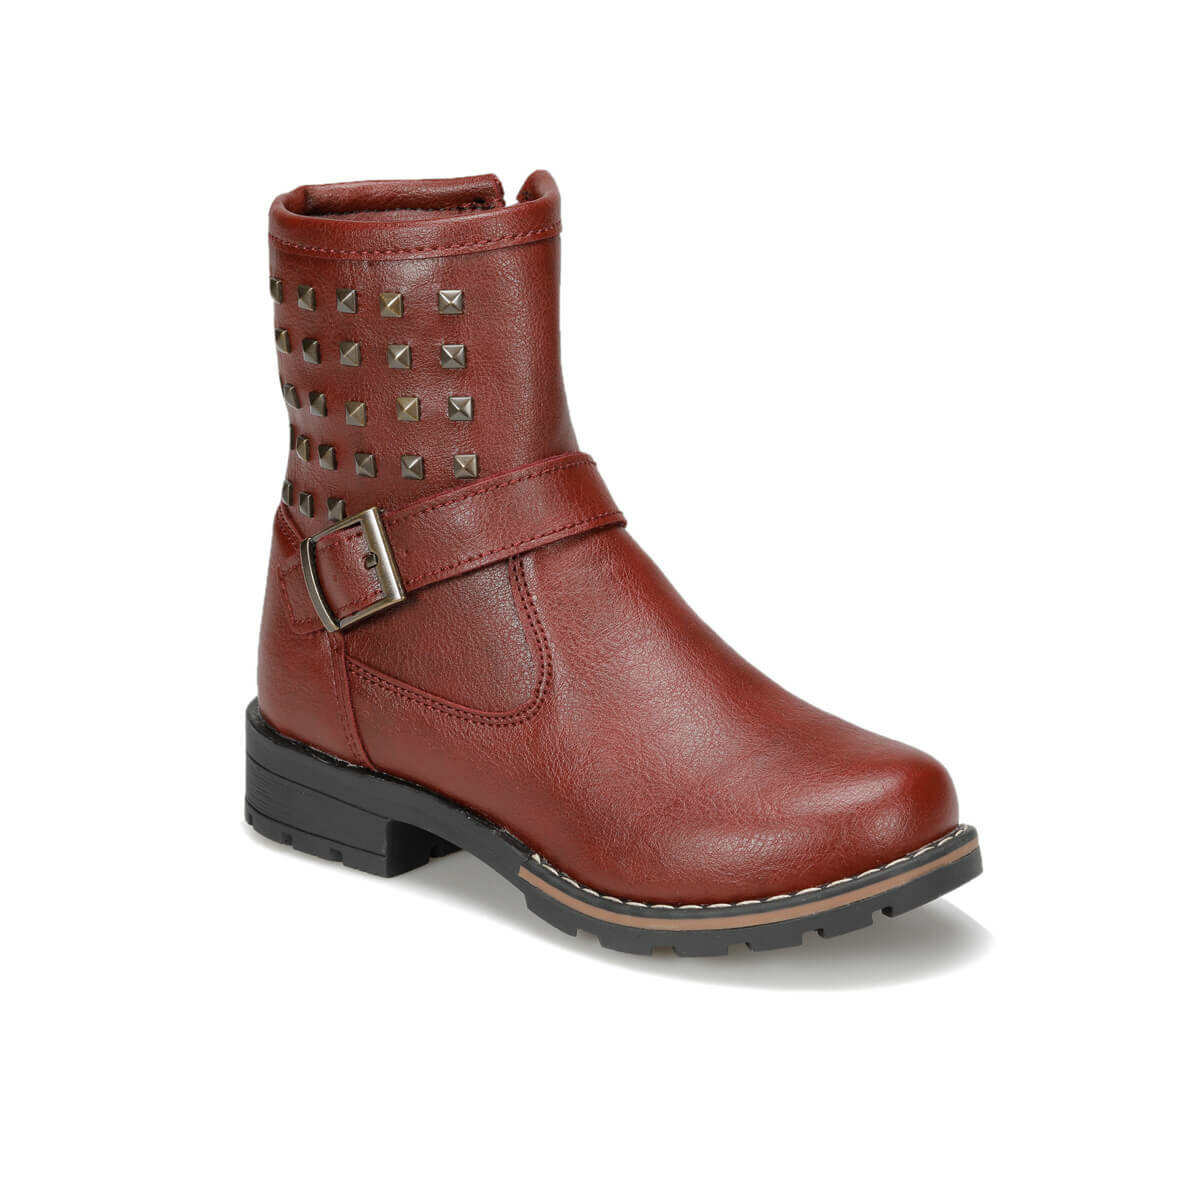 FLO 92. NINA-4. F Burgundy Female Child Boots PINKSTEP